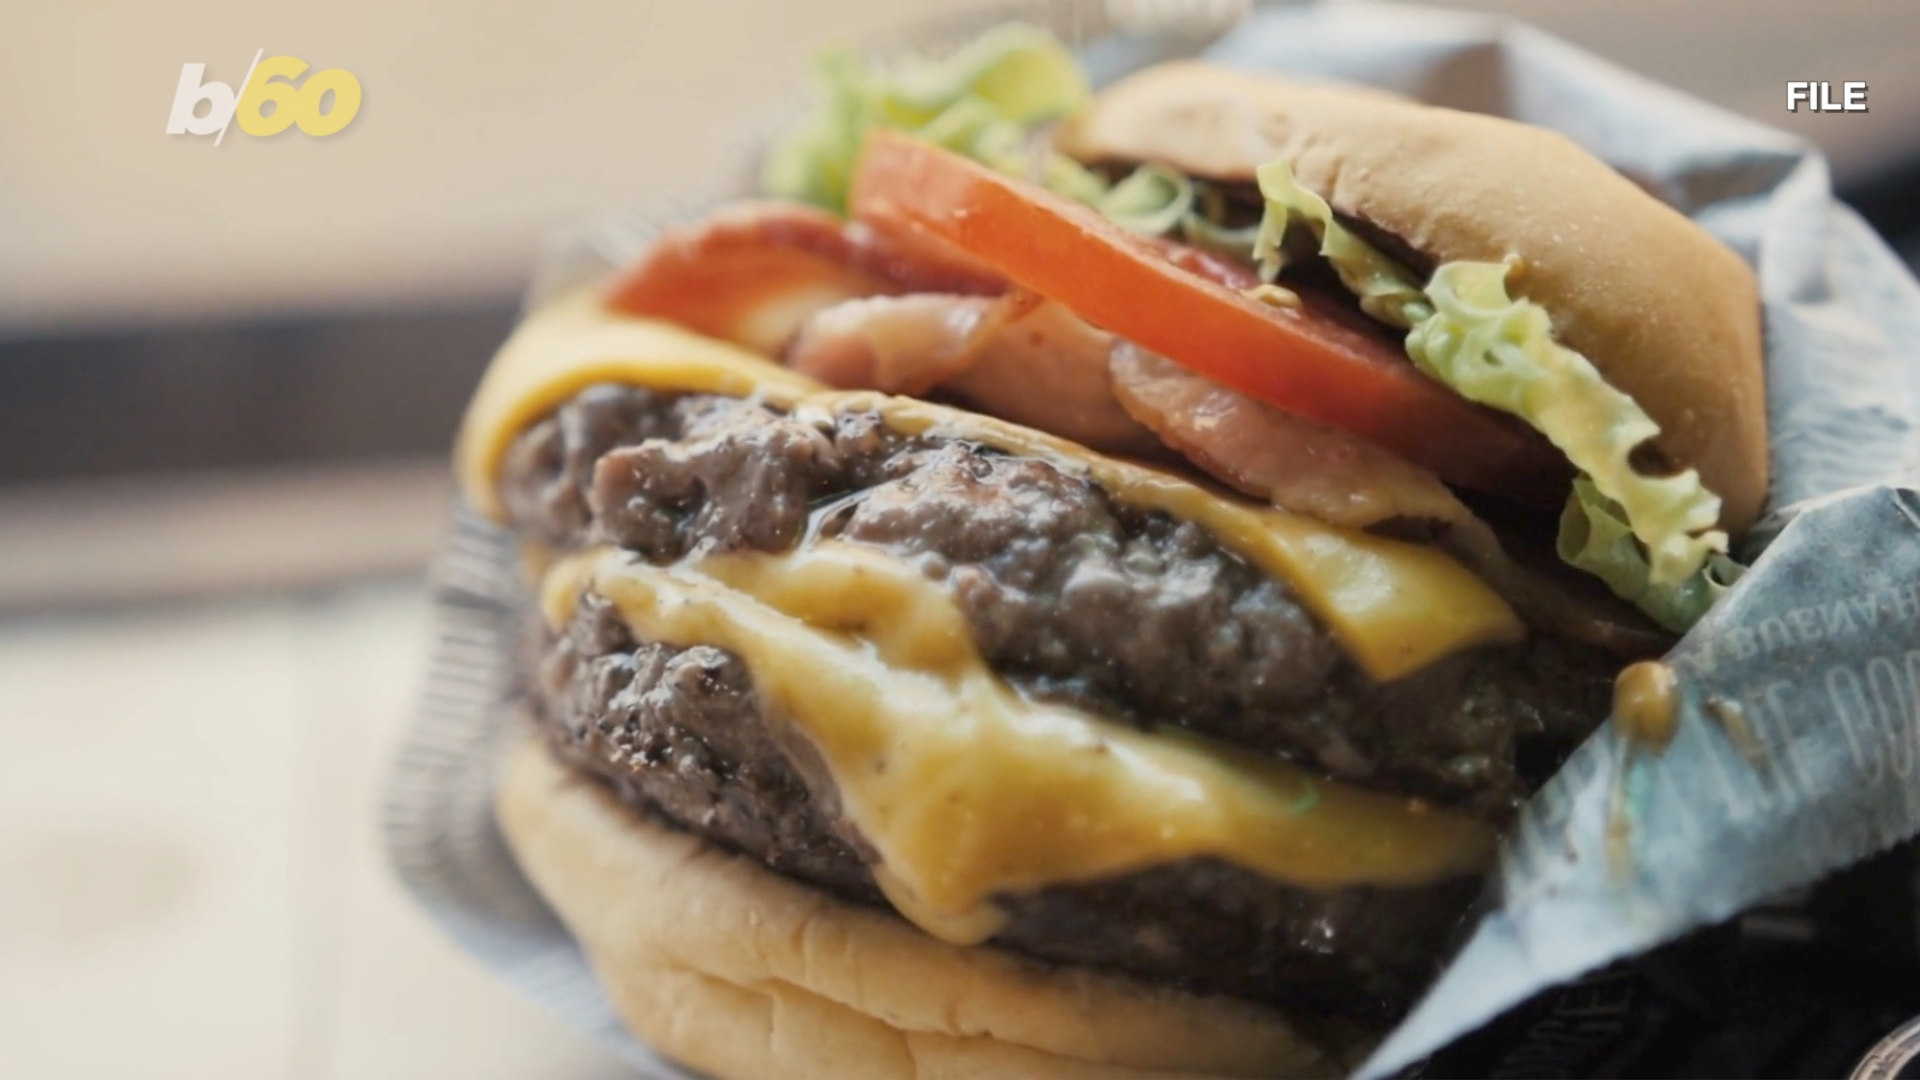 A Vegan Man Is Suing Burger King Because The Impossible Whopper Has Meat Cross-Contamination